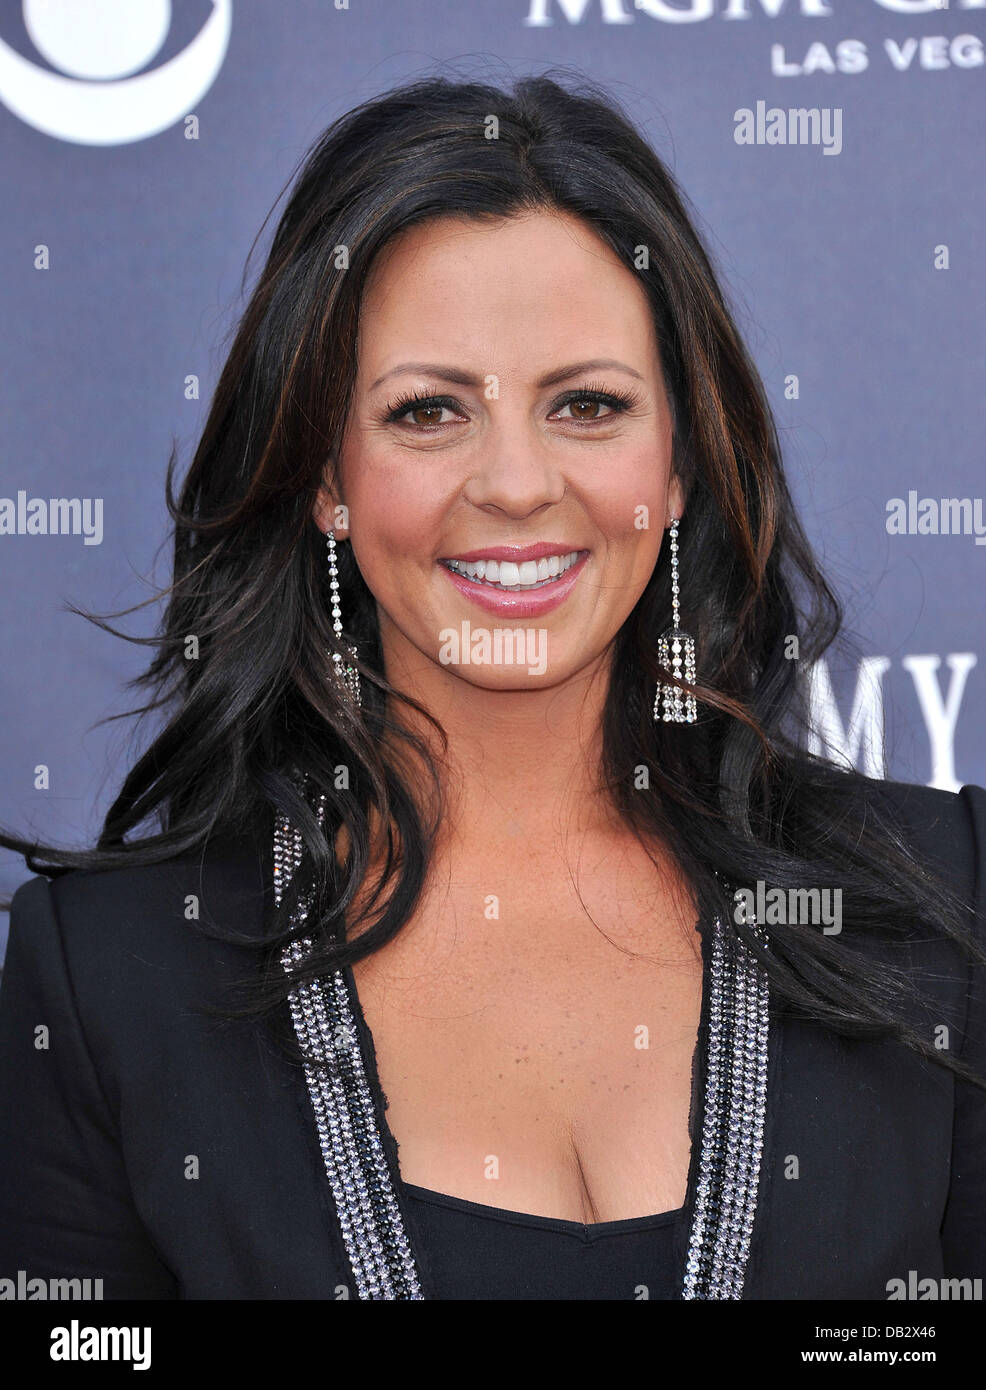 Sara Evans Stock Photos Amp Sara Evans Stock Images Alamy